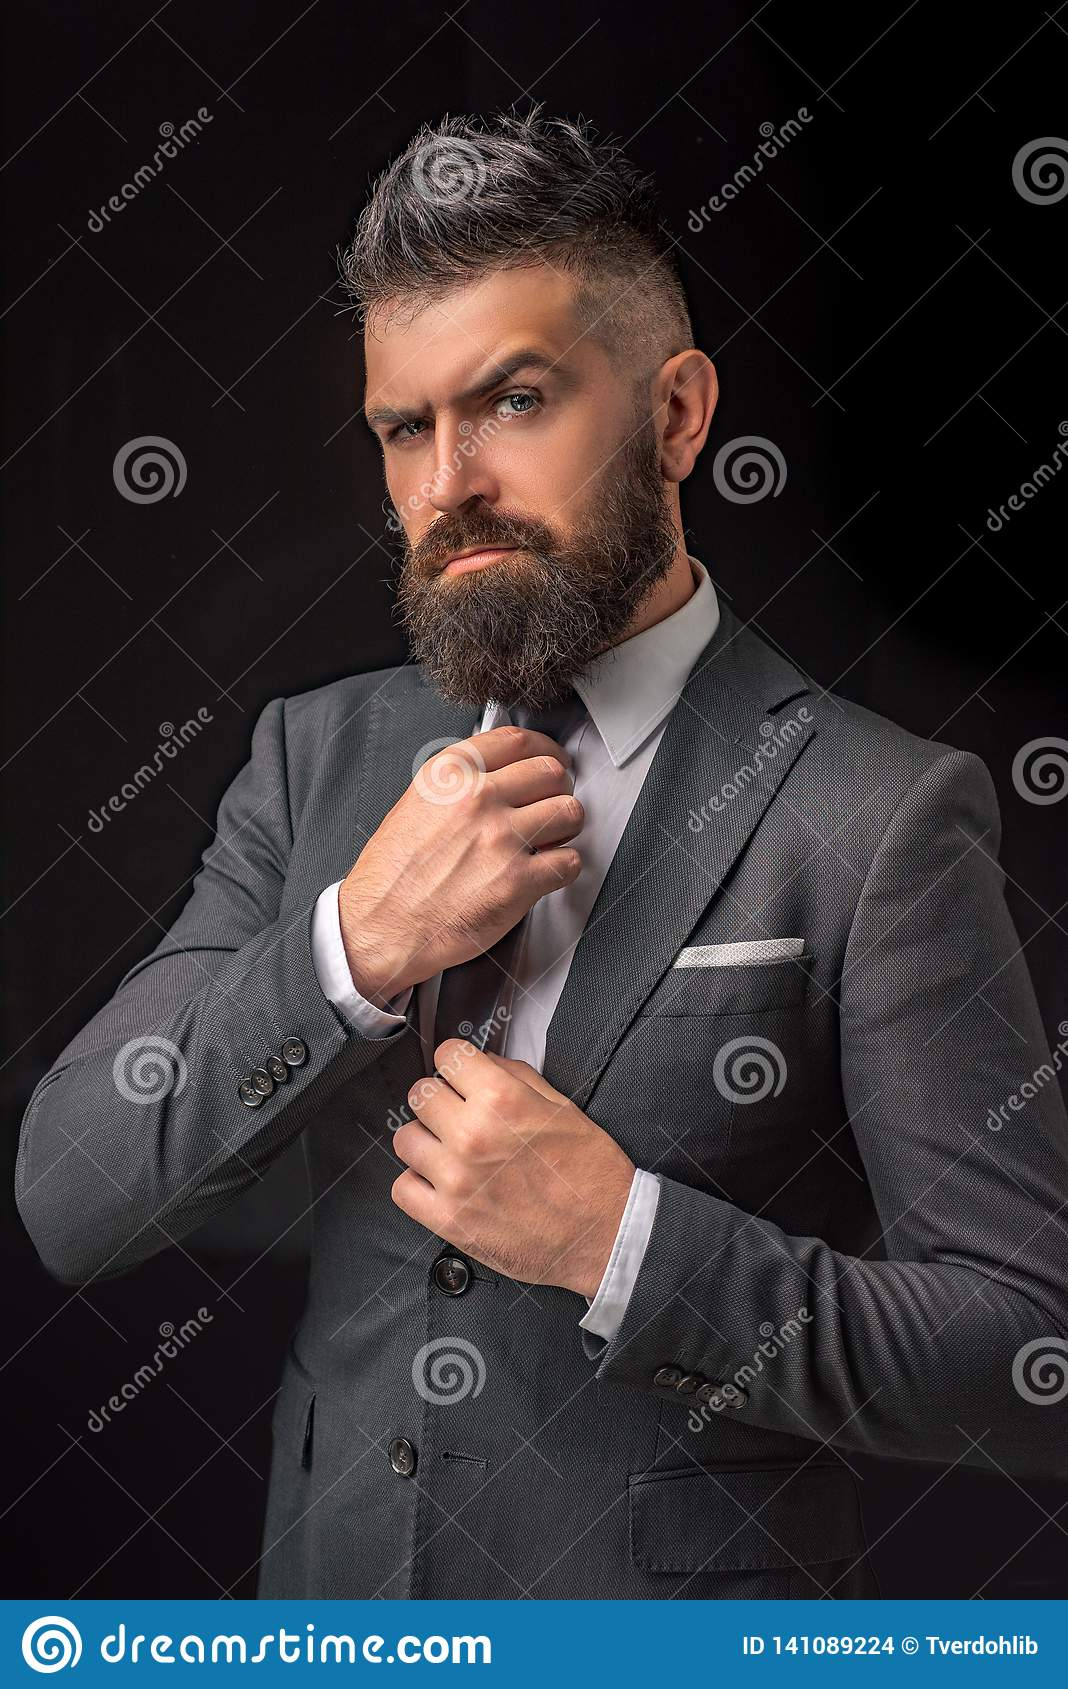 Bow-tie fashion. Bearded man in dark grey suit. Man in classic suit, shirt and tie. Rich man model. Luxury classic suits